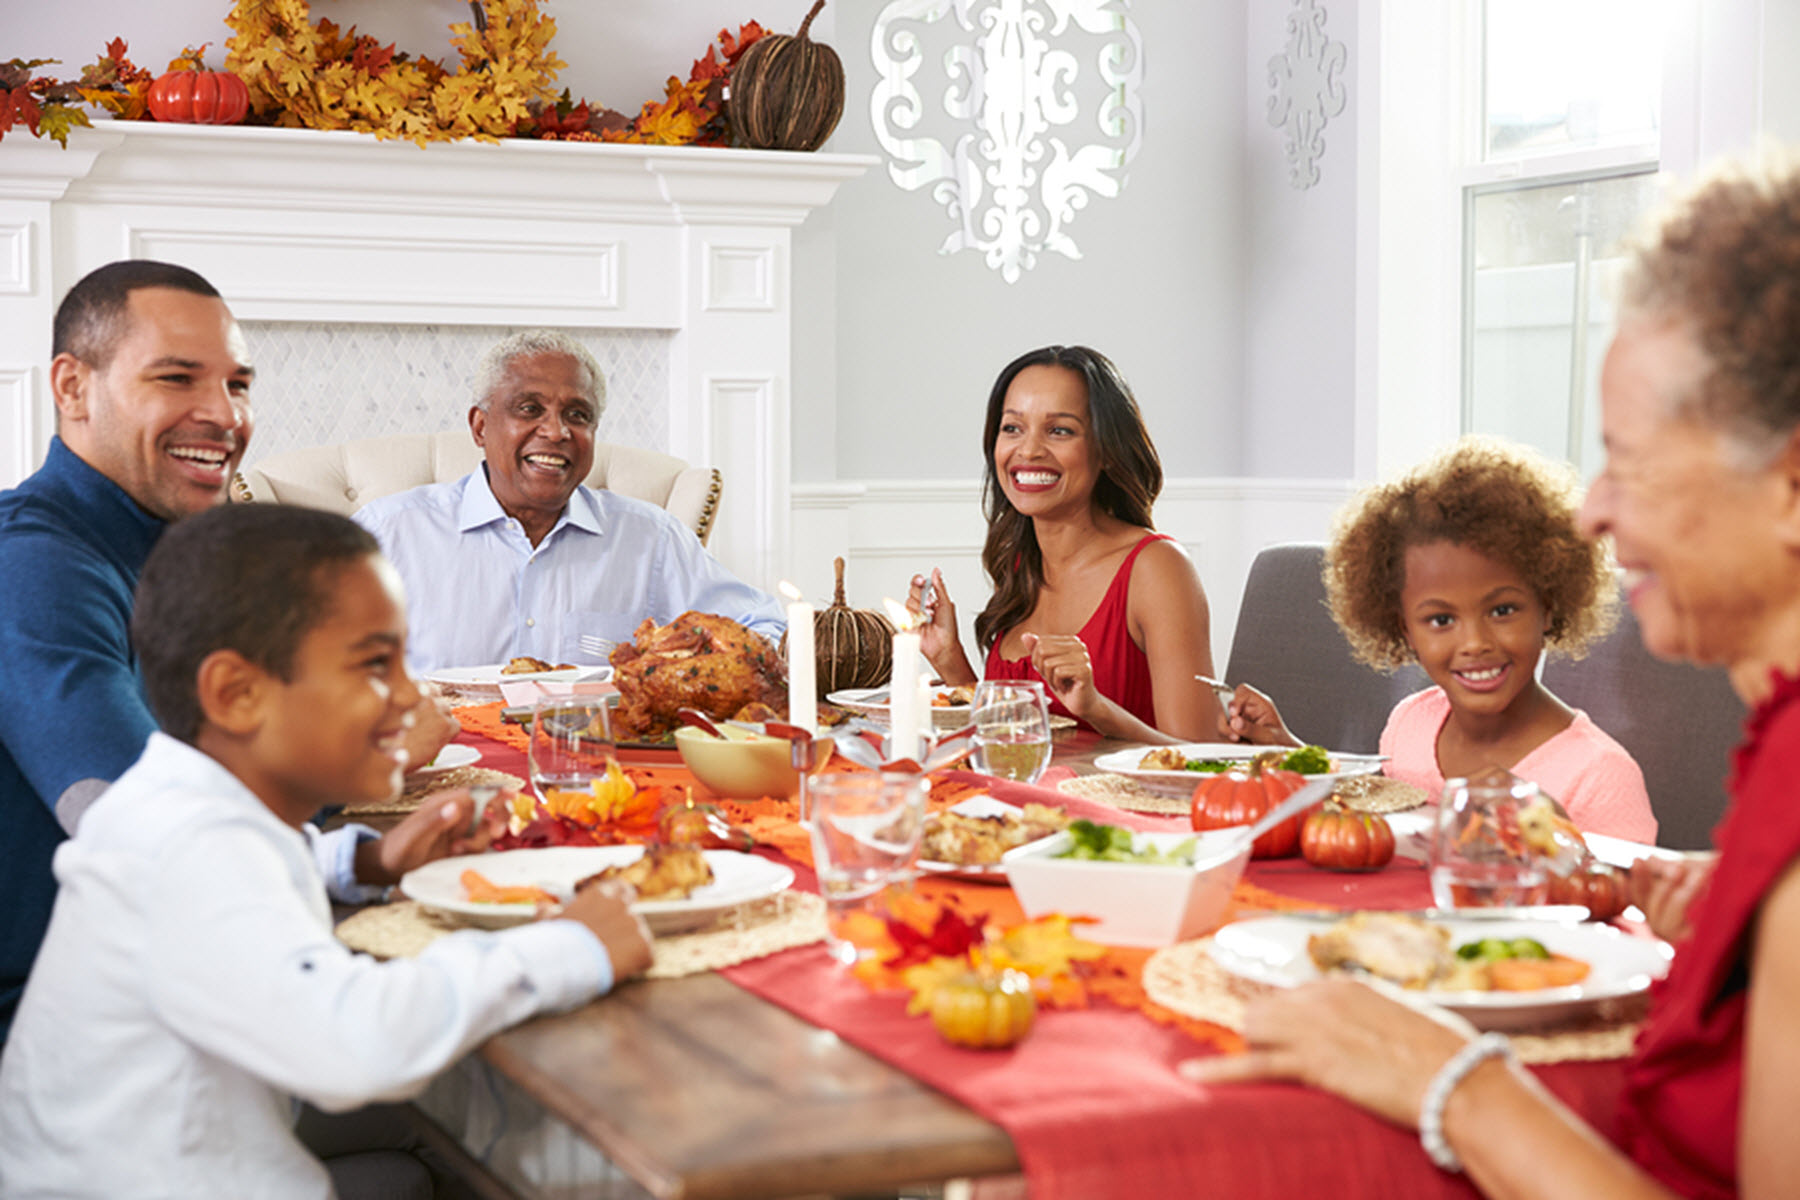 Senior Care in West Hollywood CA: National Grandparent's Day